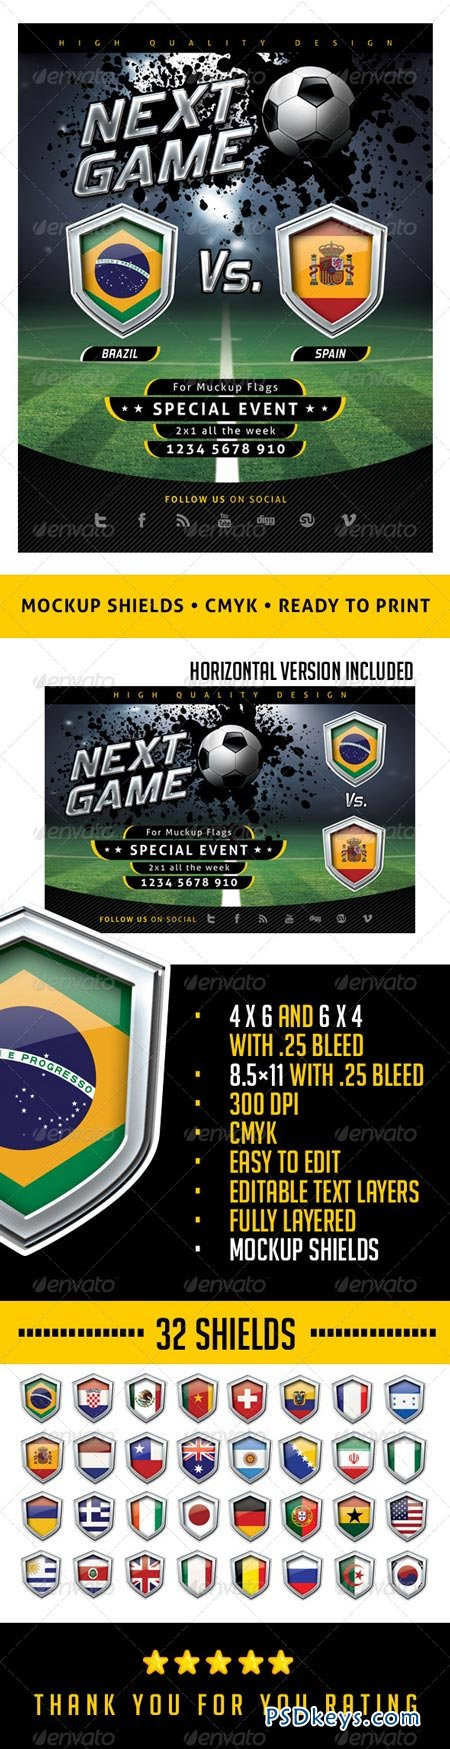 Flyer Soccer Template with Mockup Shields 6502798